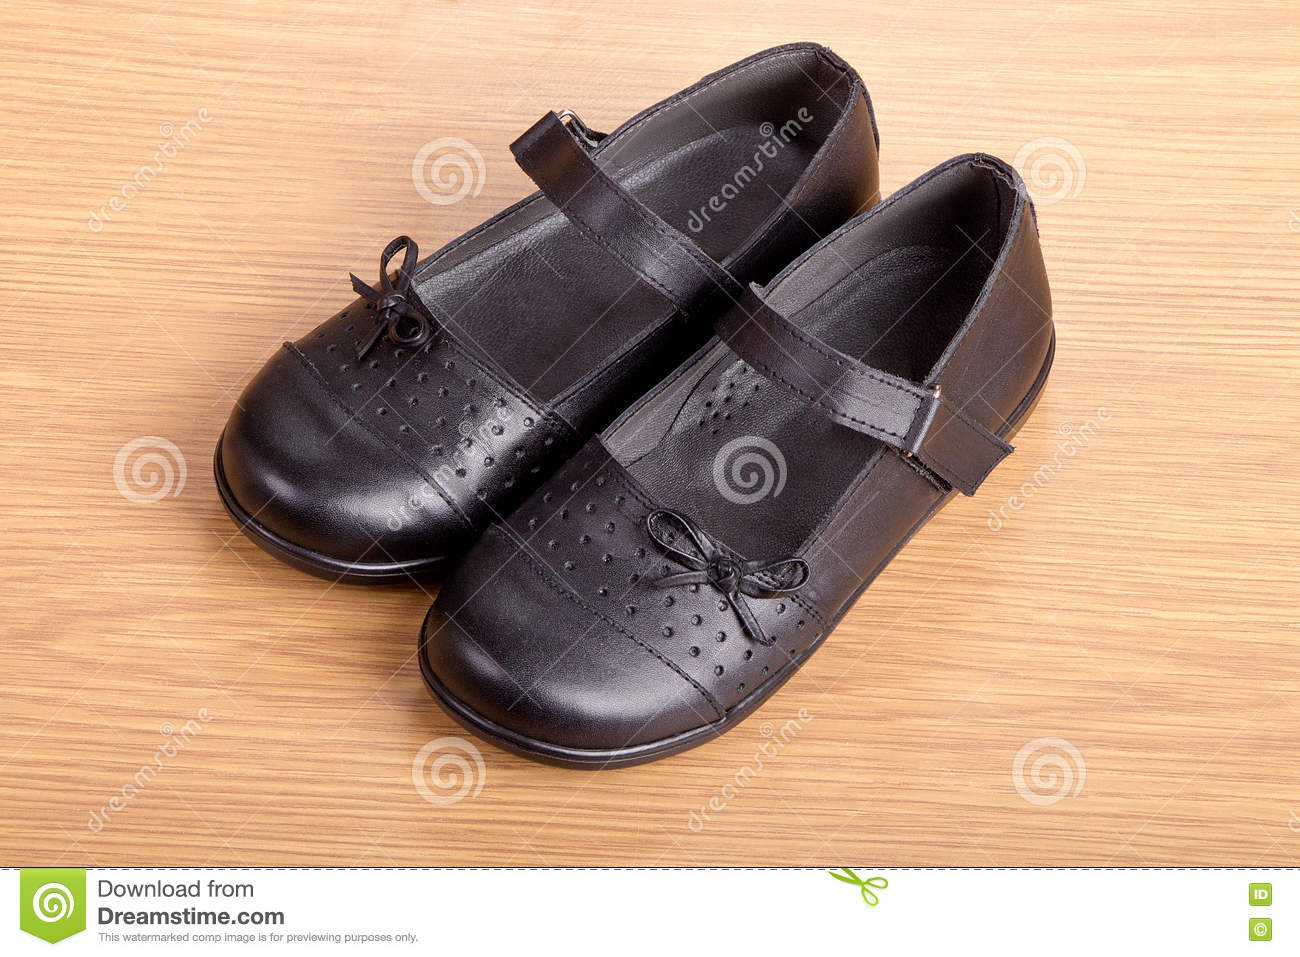 how to make black school shoes shine